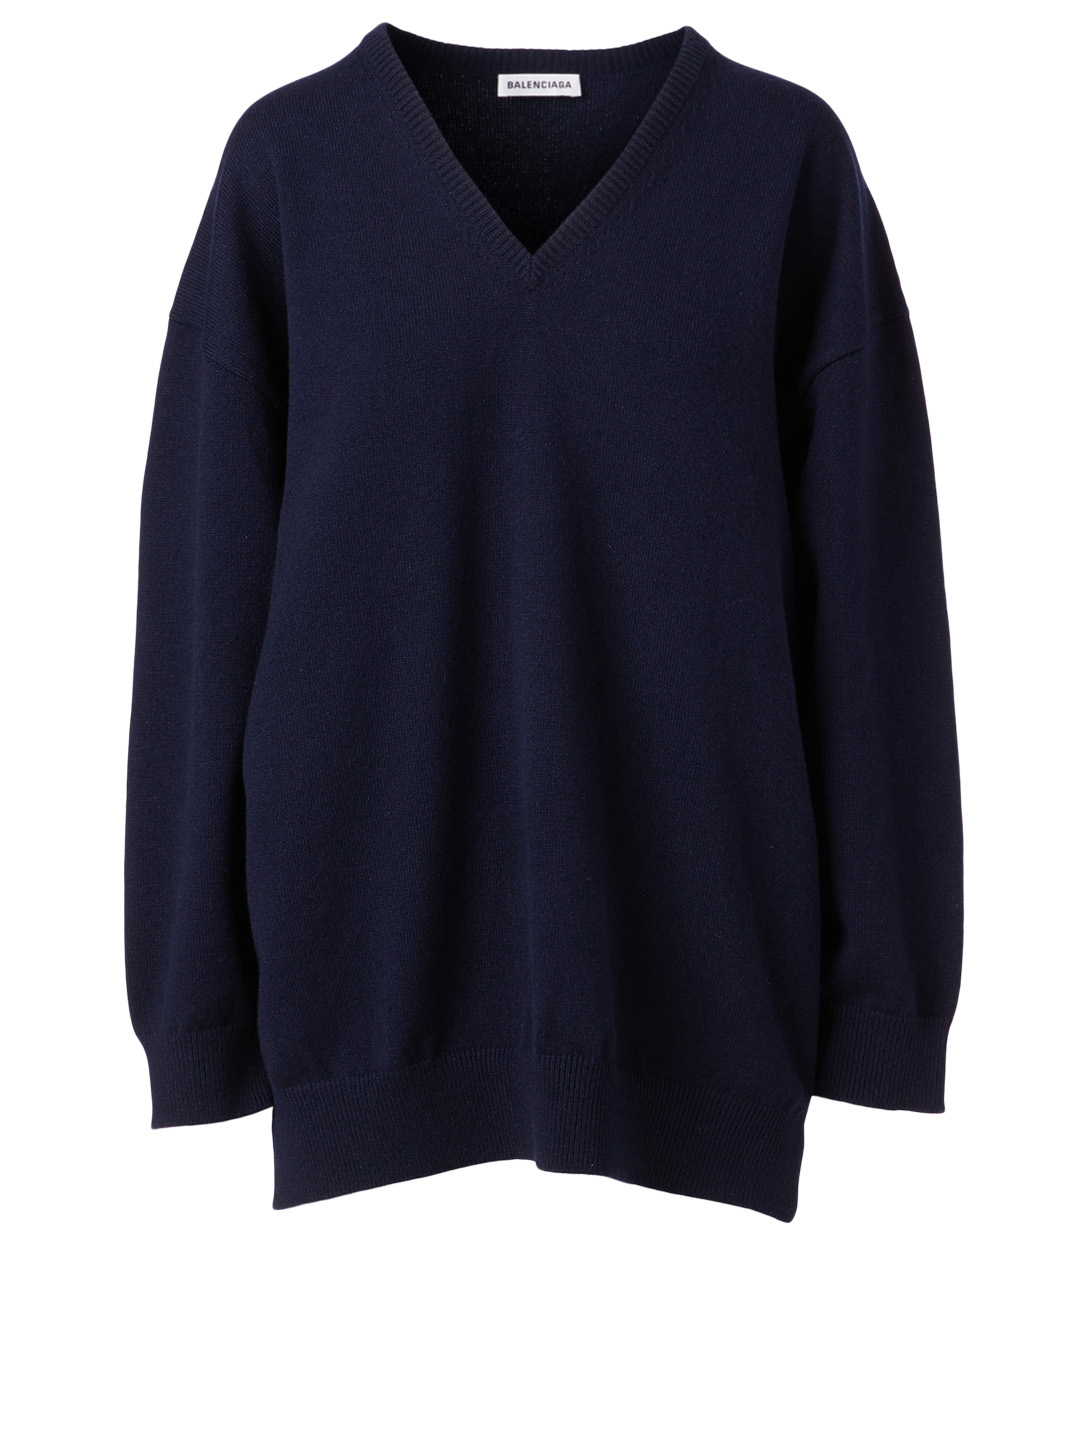 BALENCIAGA Cashmere Signature Logo Sweater Women's Blue